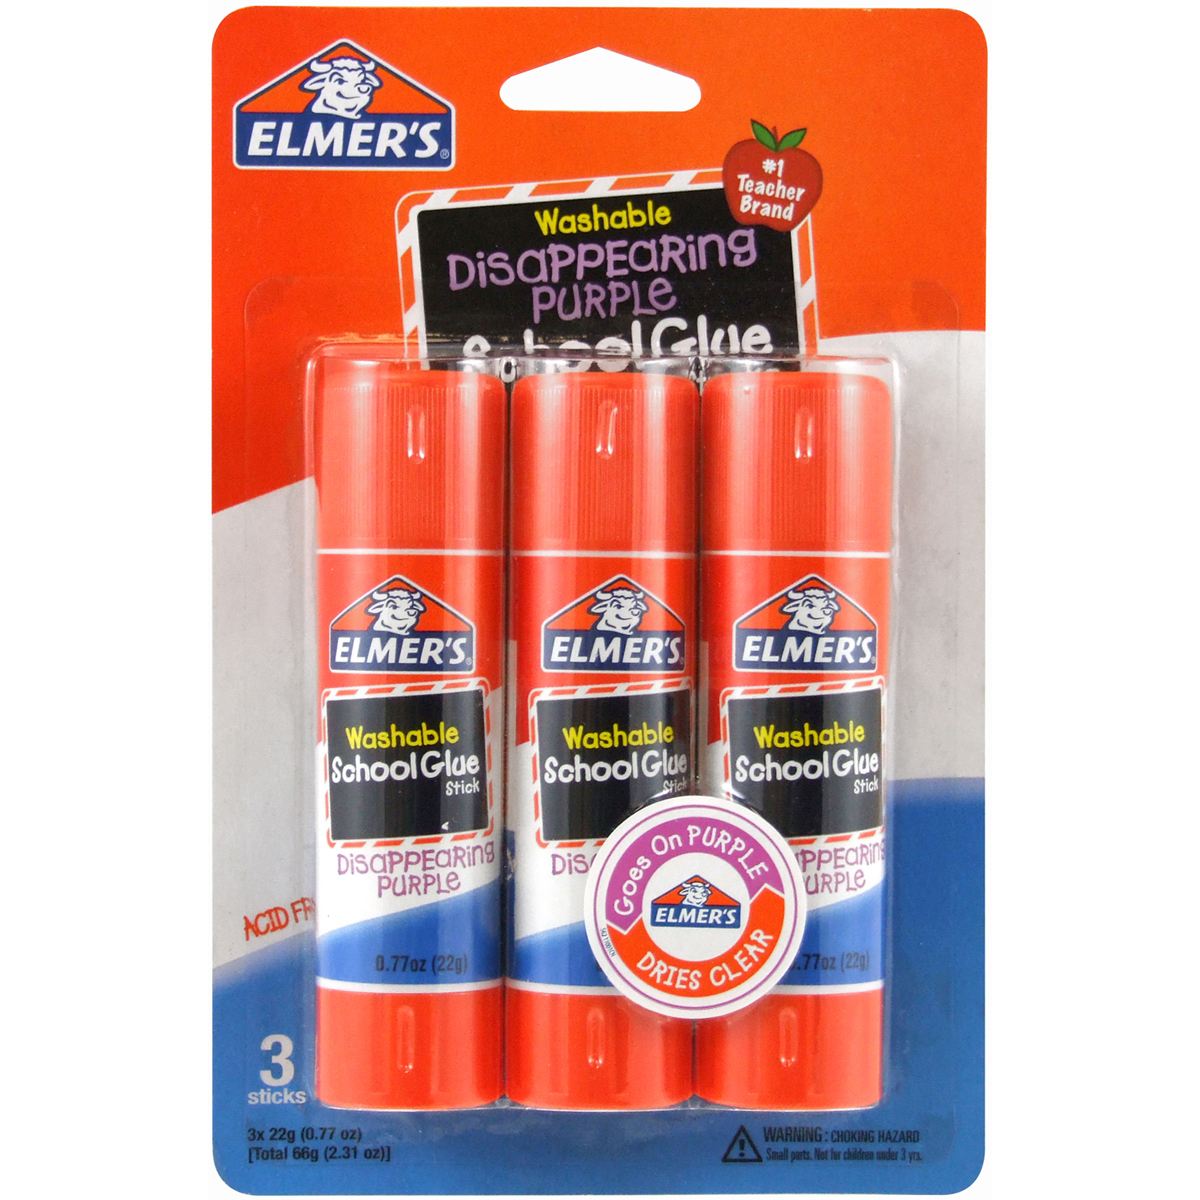 Elmer's Washable School Glue Stick - Purple 3/Pkg .77oz